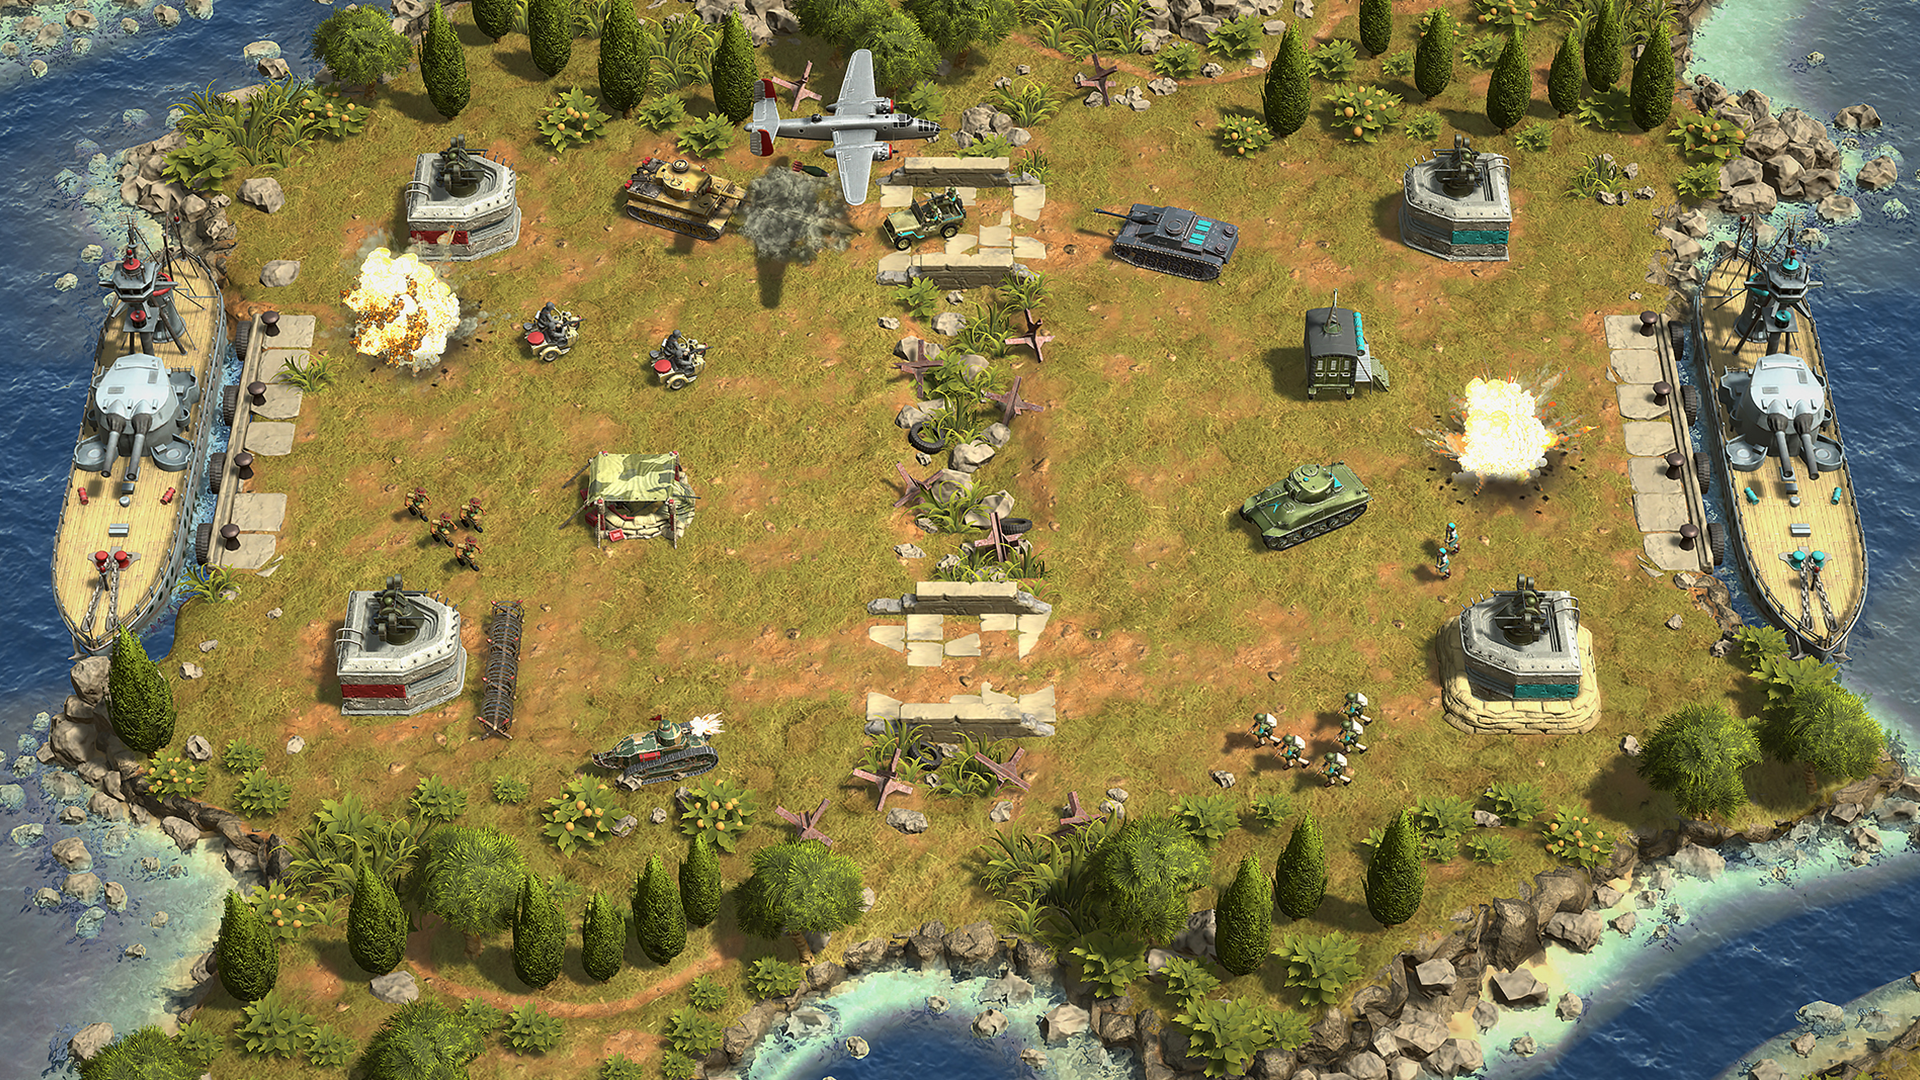 Battle Islands Commanders Out Now For PC And Current-Gen Consoles